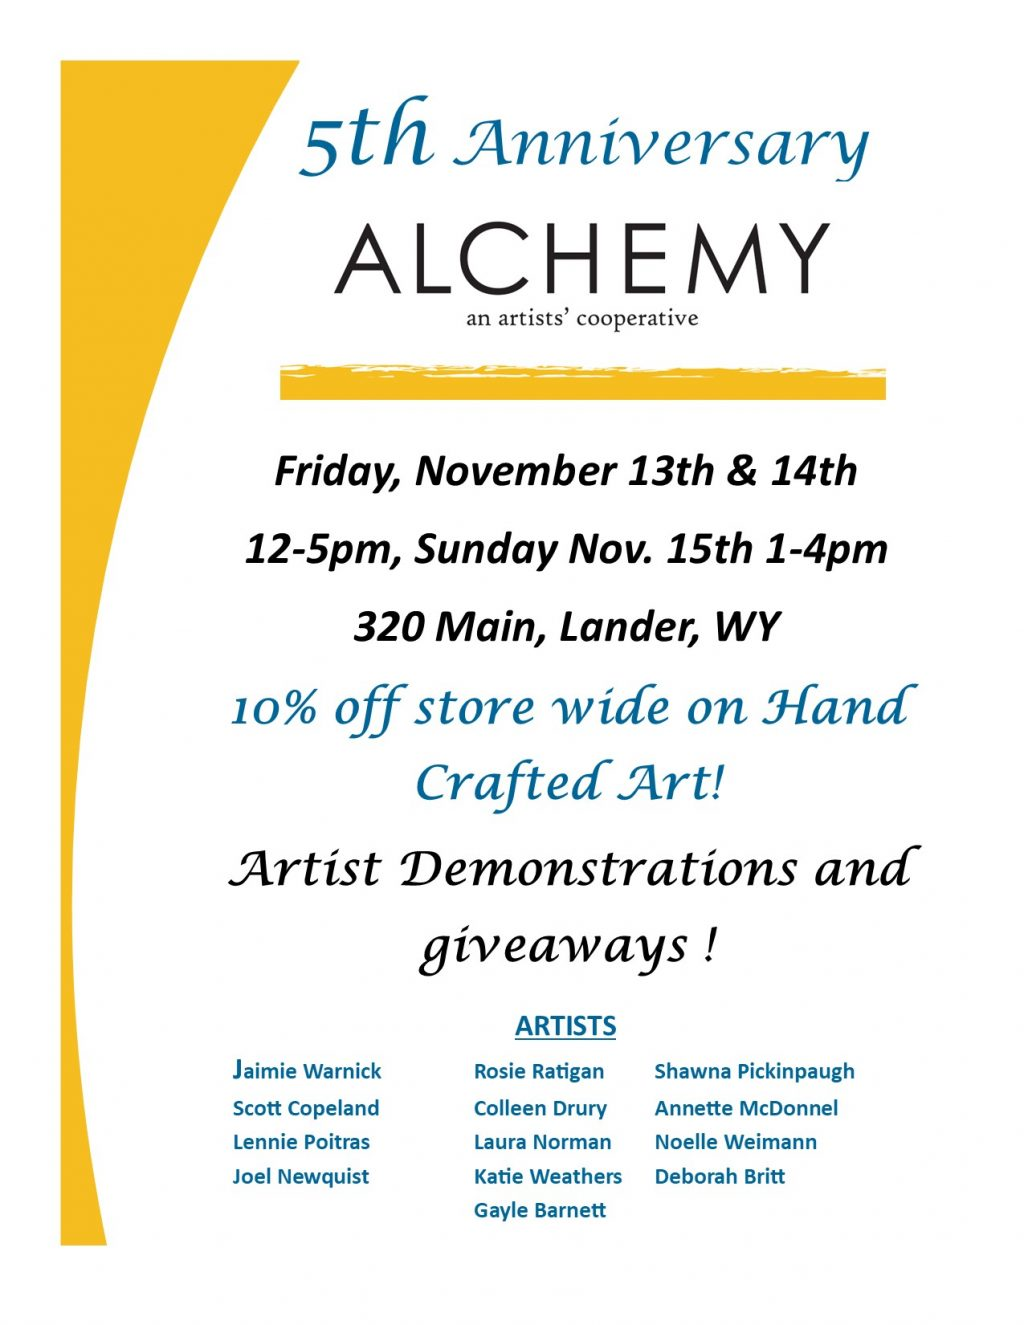 5th Anniversary Alchemy